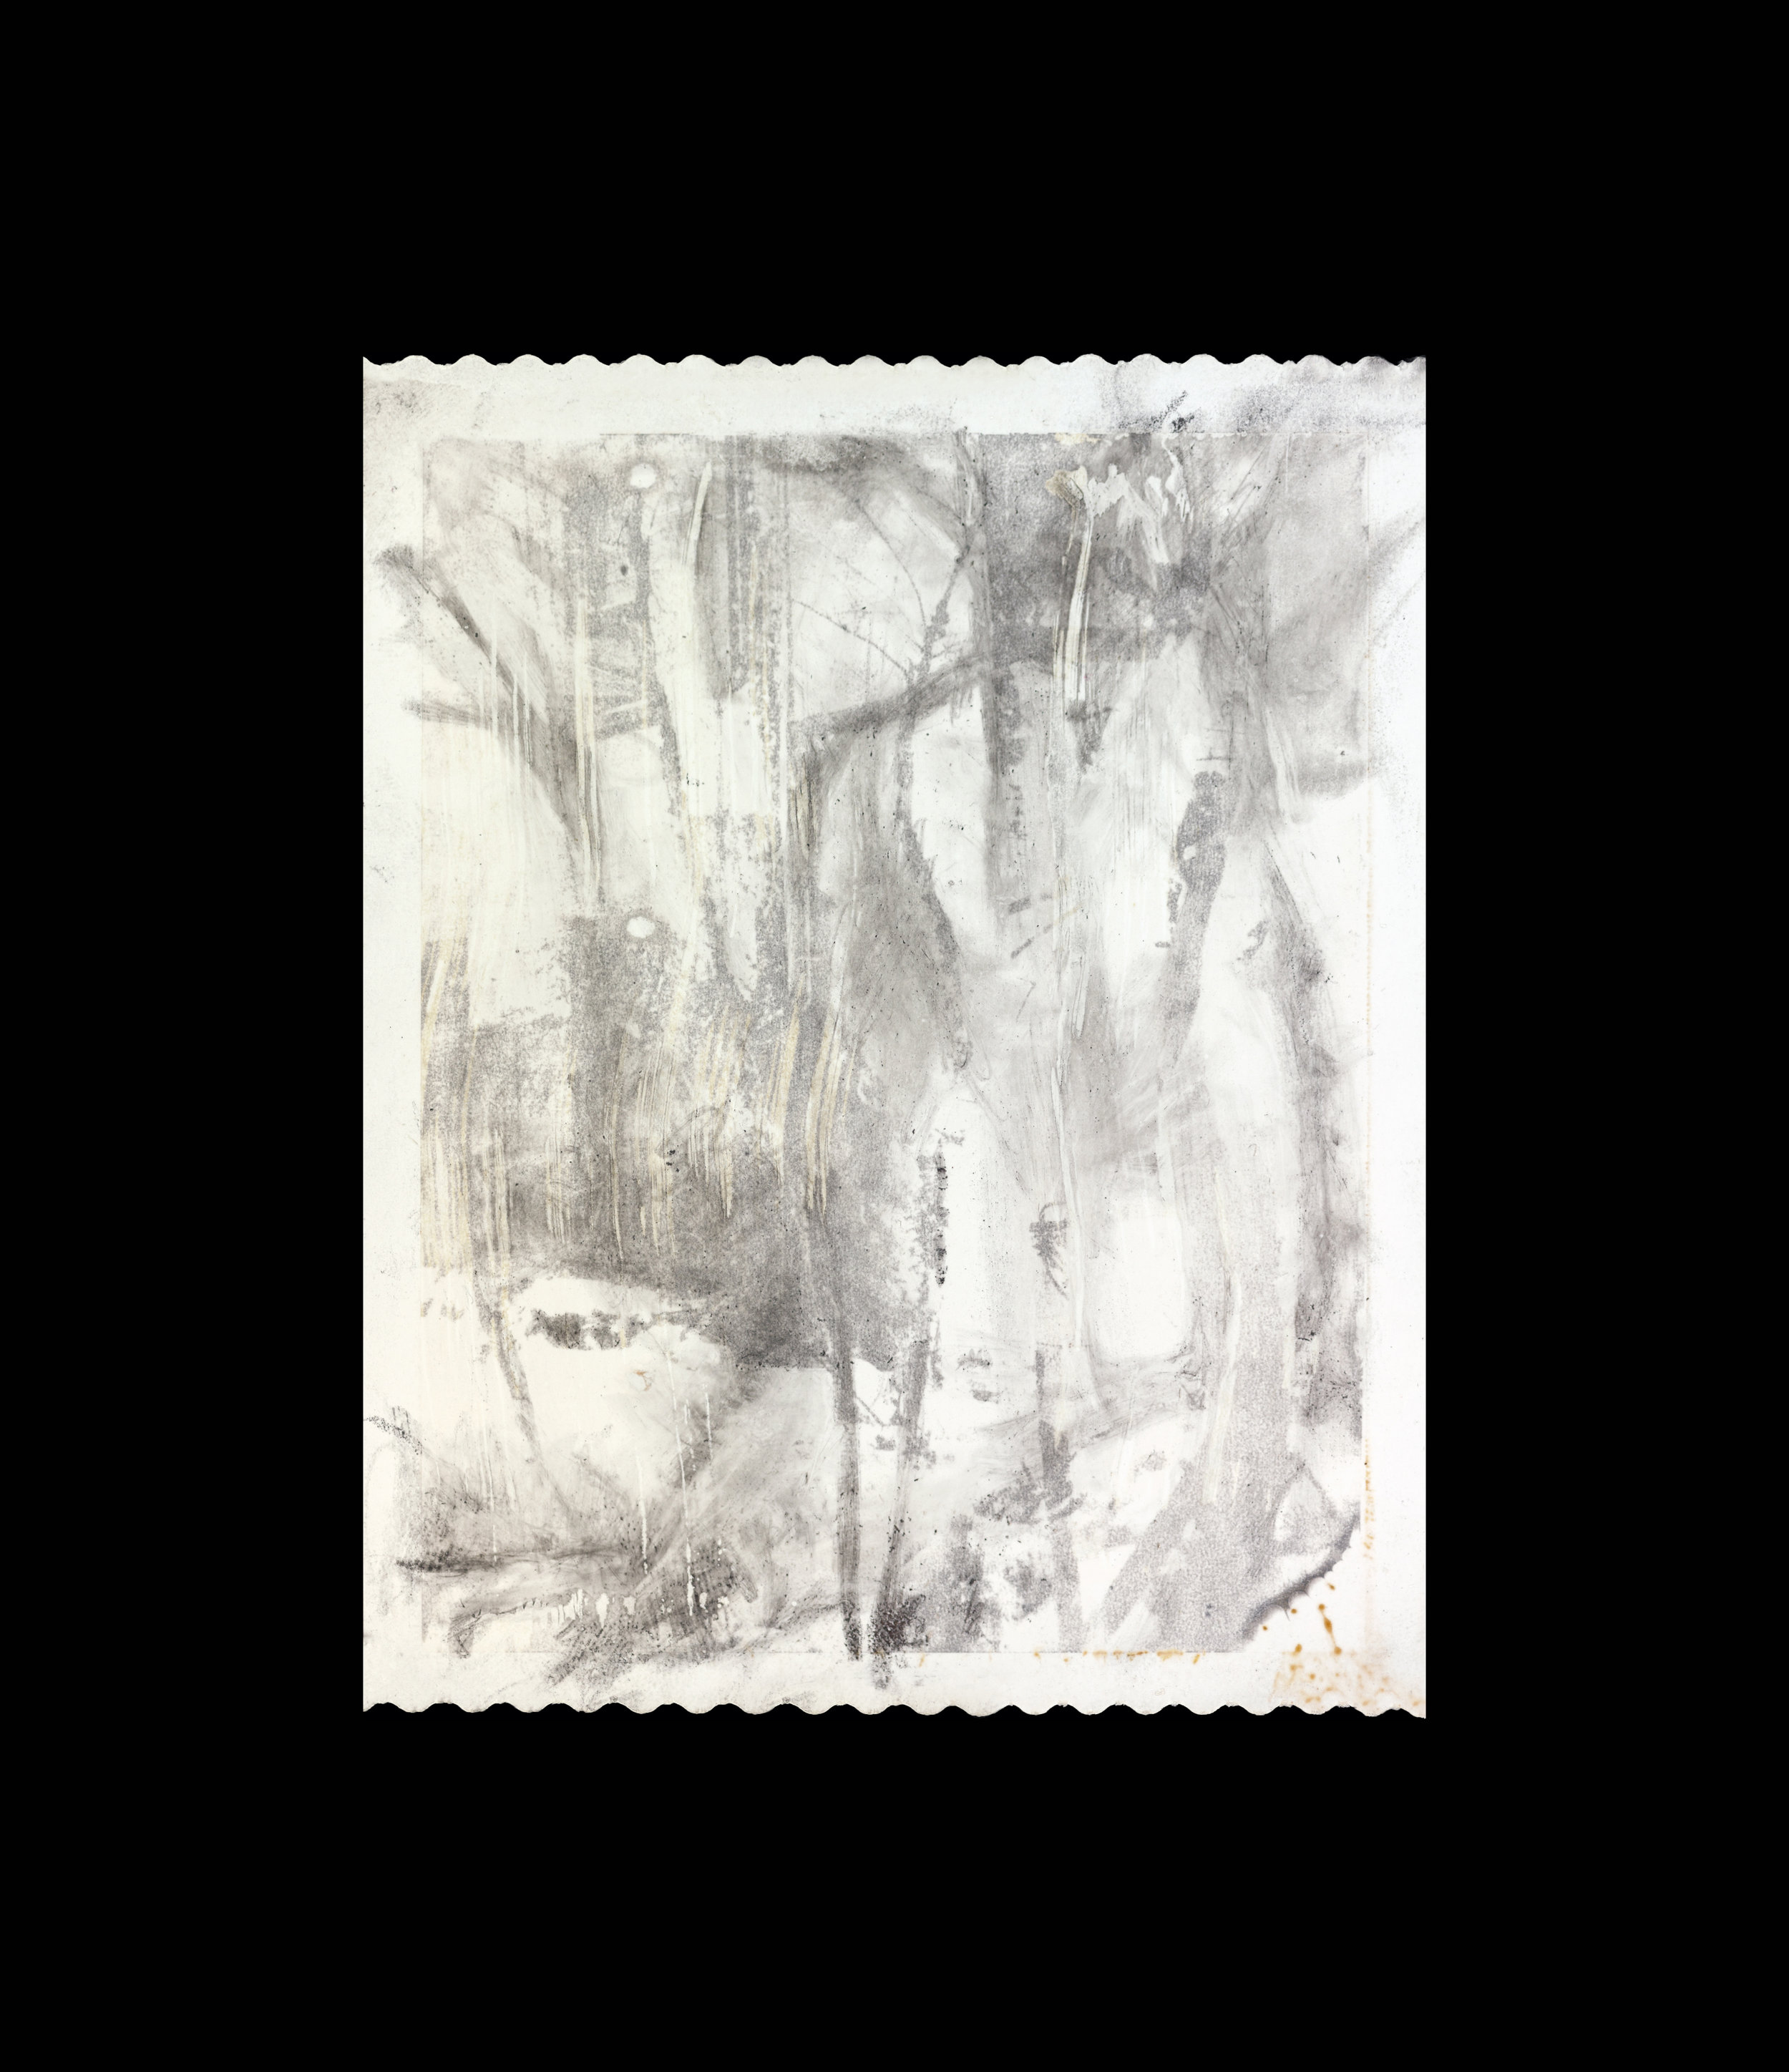 "Untitled #6  3-1/4"" H x 4-1/8"" W  Polaroid positive with graphite  2014-2018"